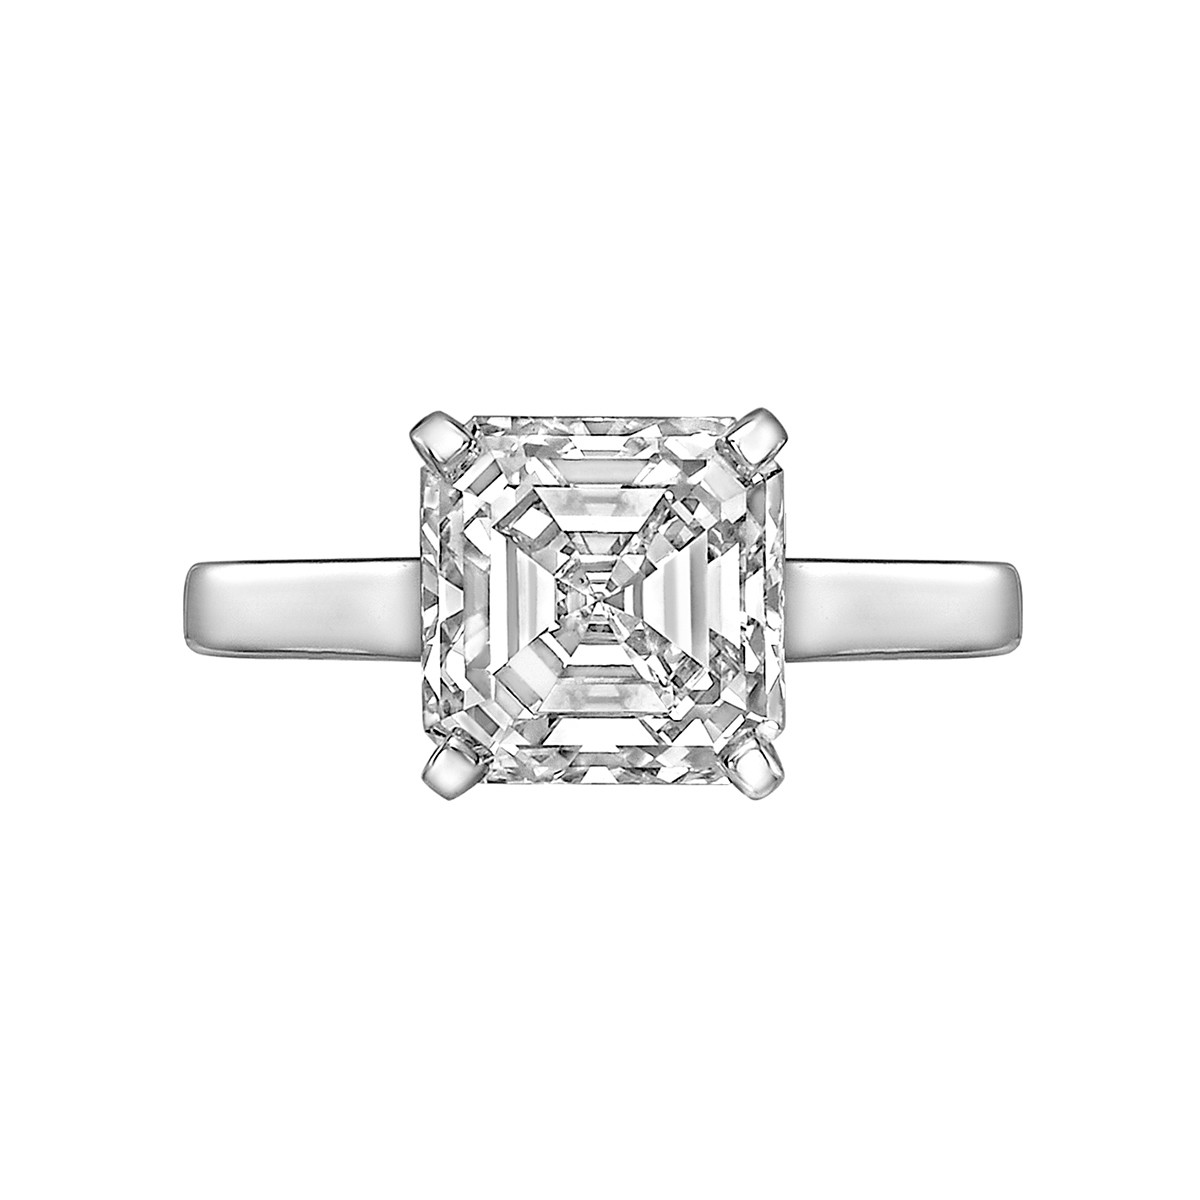 3.01ct Square Emerald-Cut Diamond Solitaire Ring